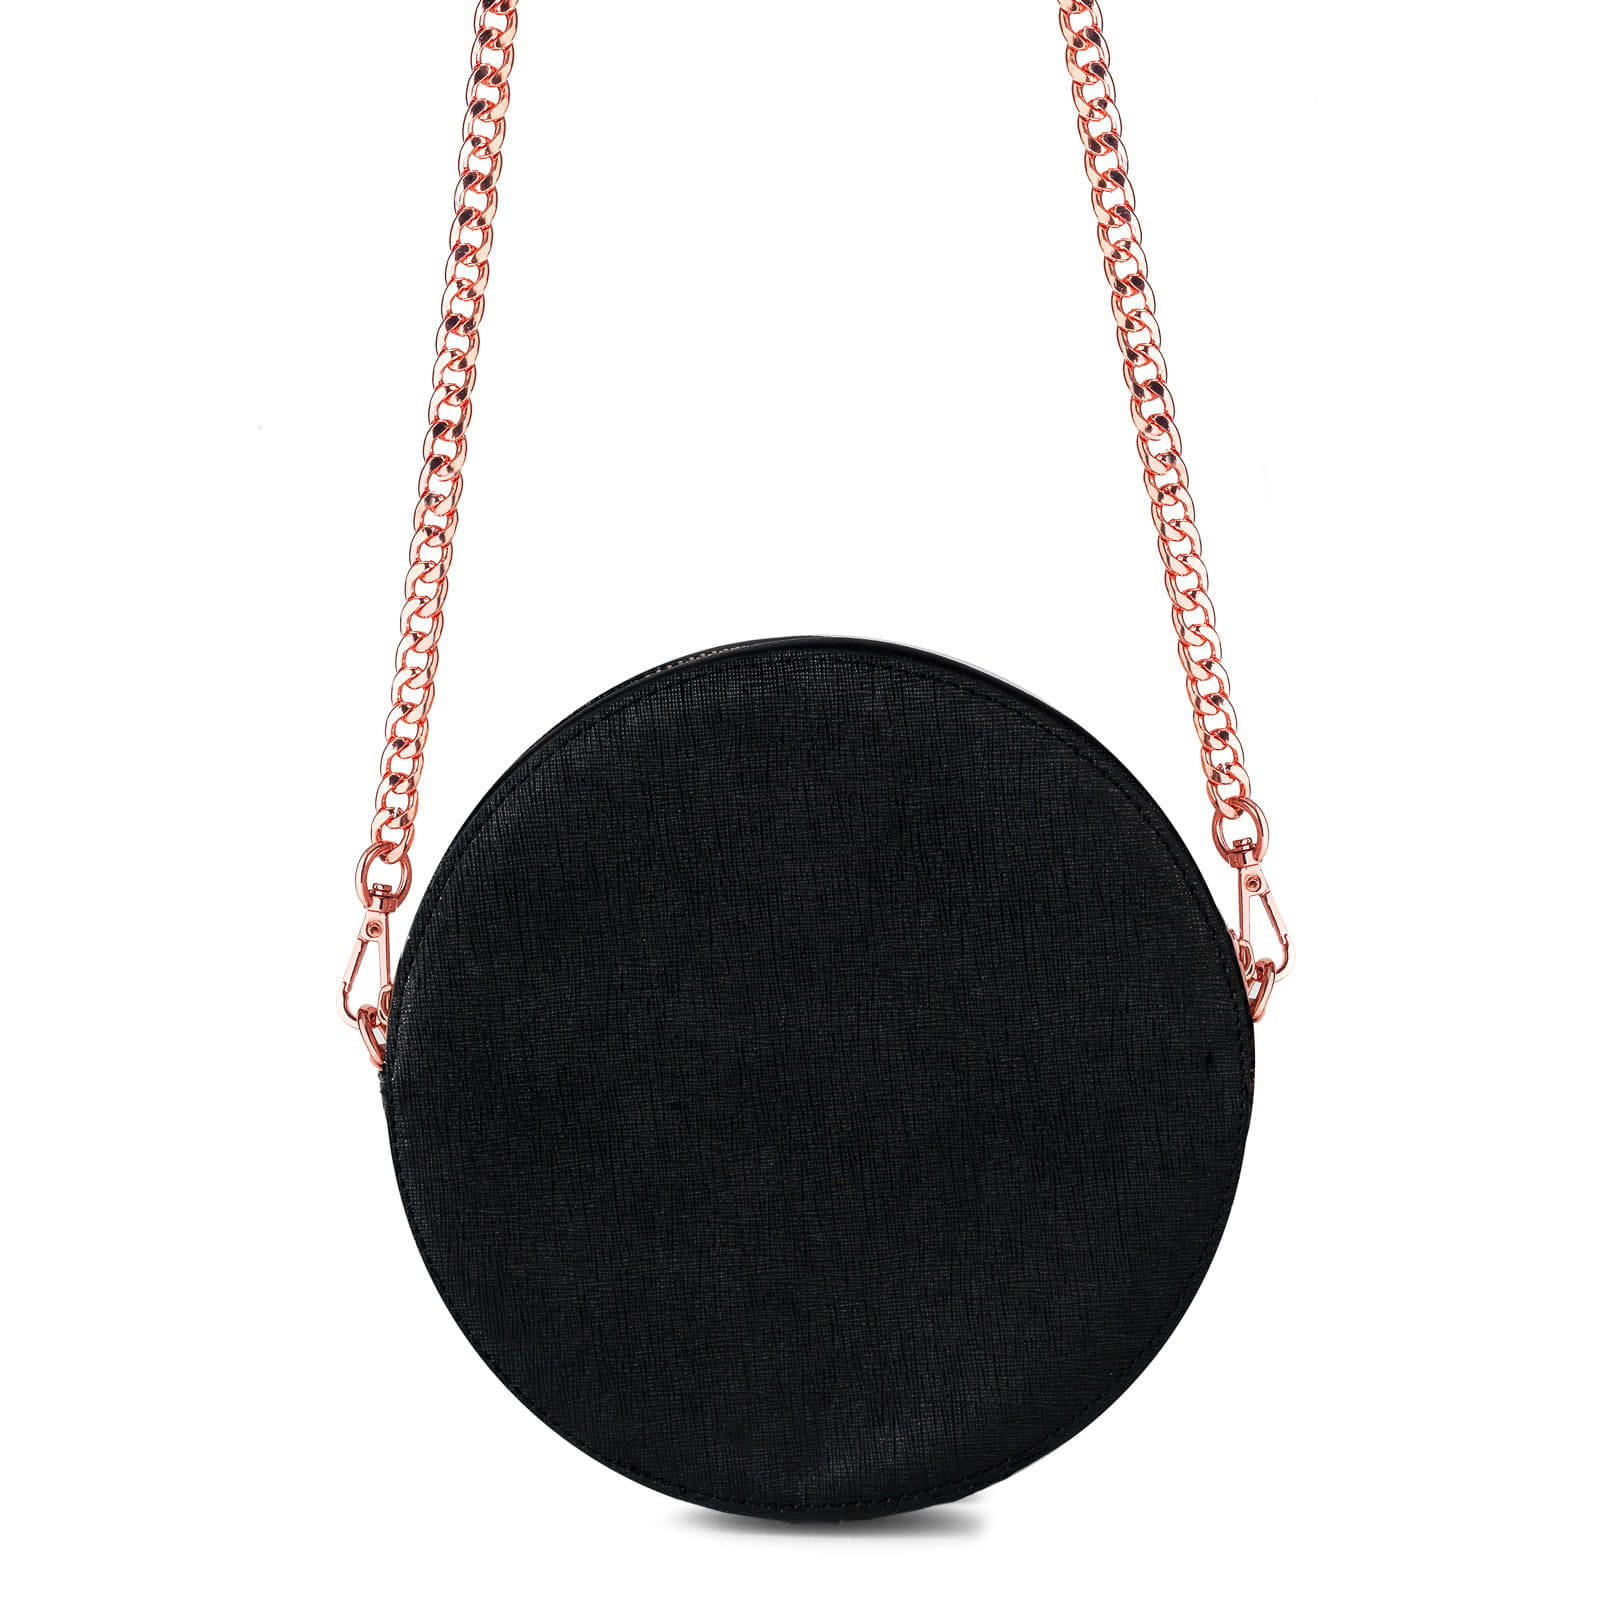 Blank Personalised Black Saffiano Leather Round Crossbody Bag